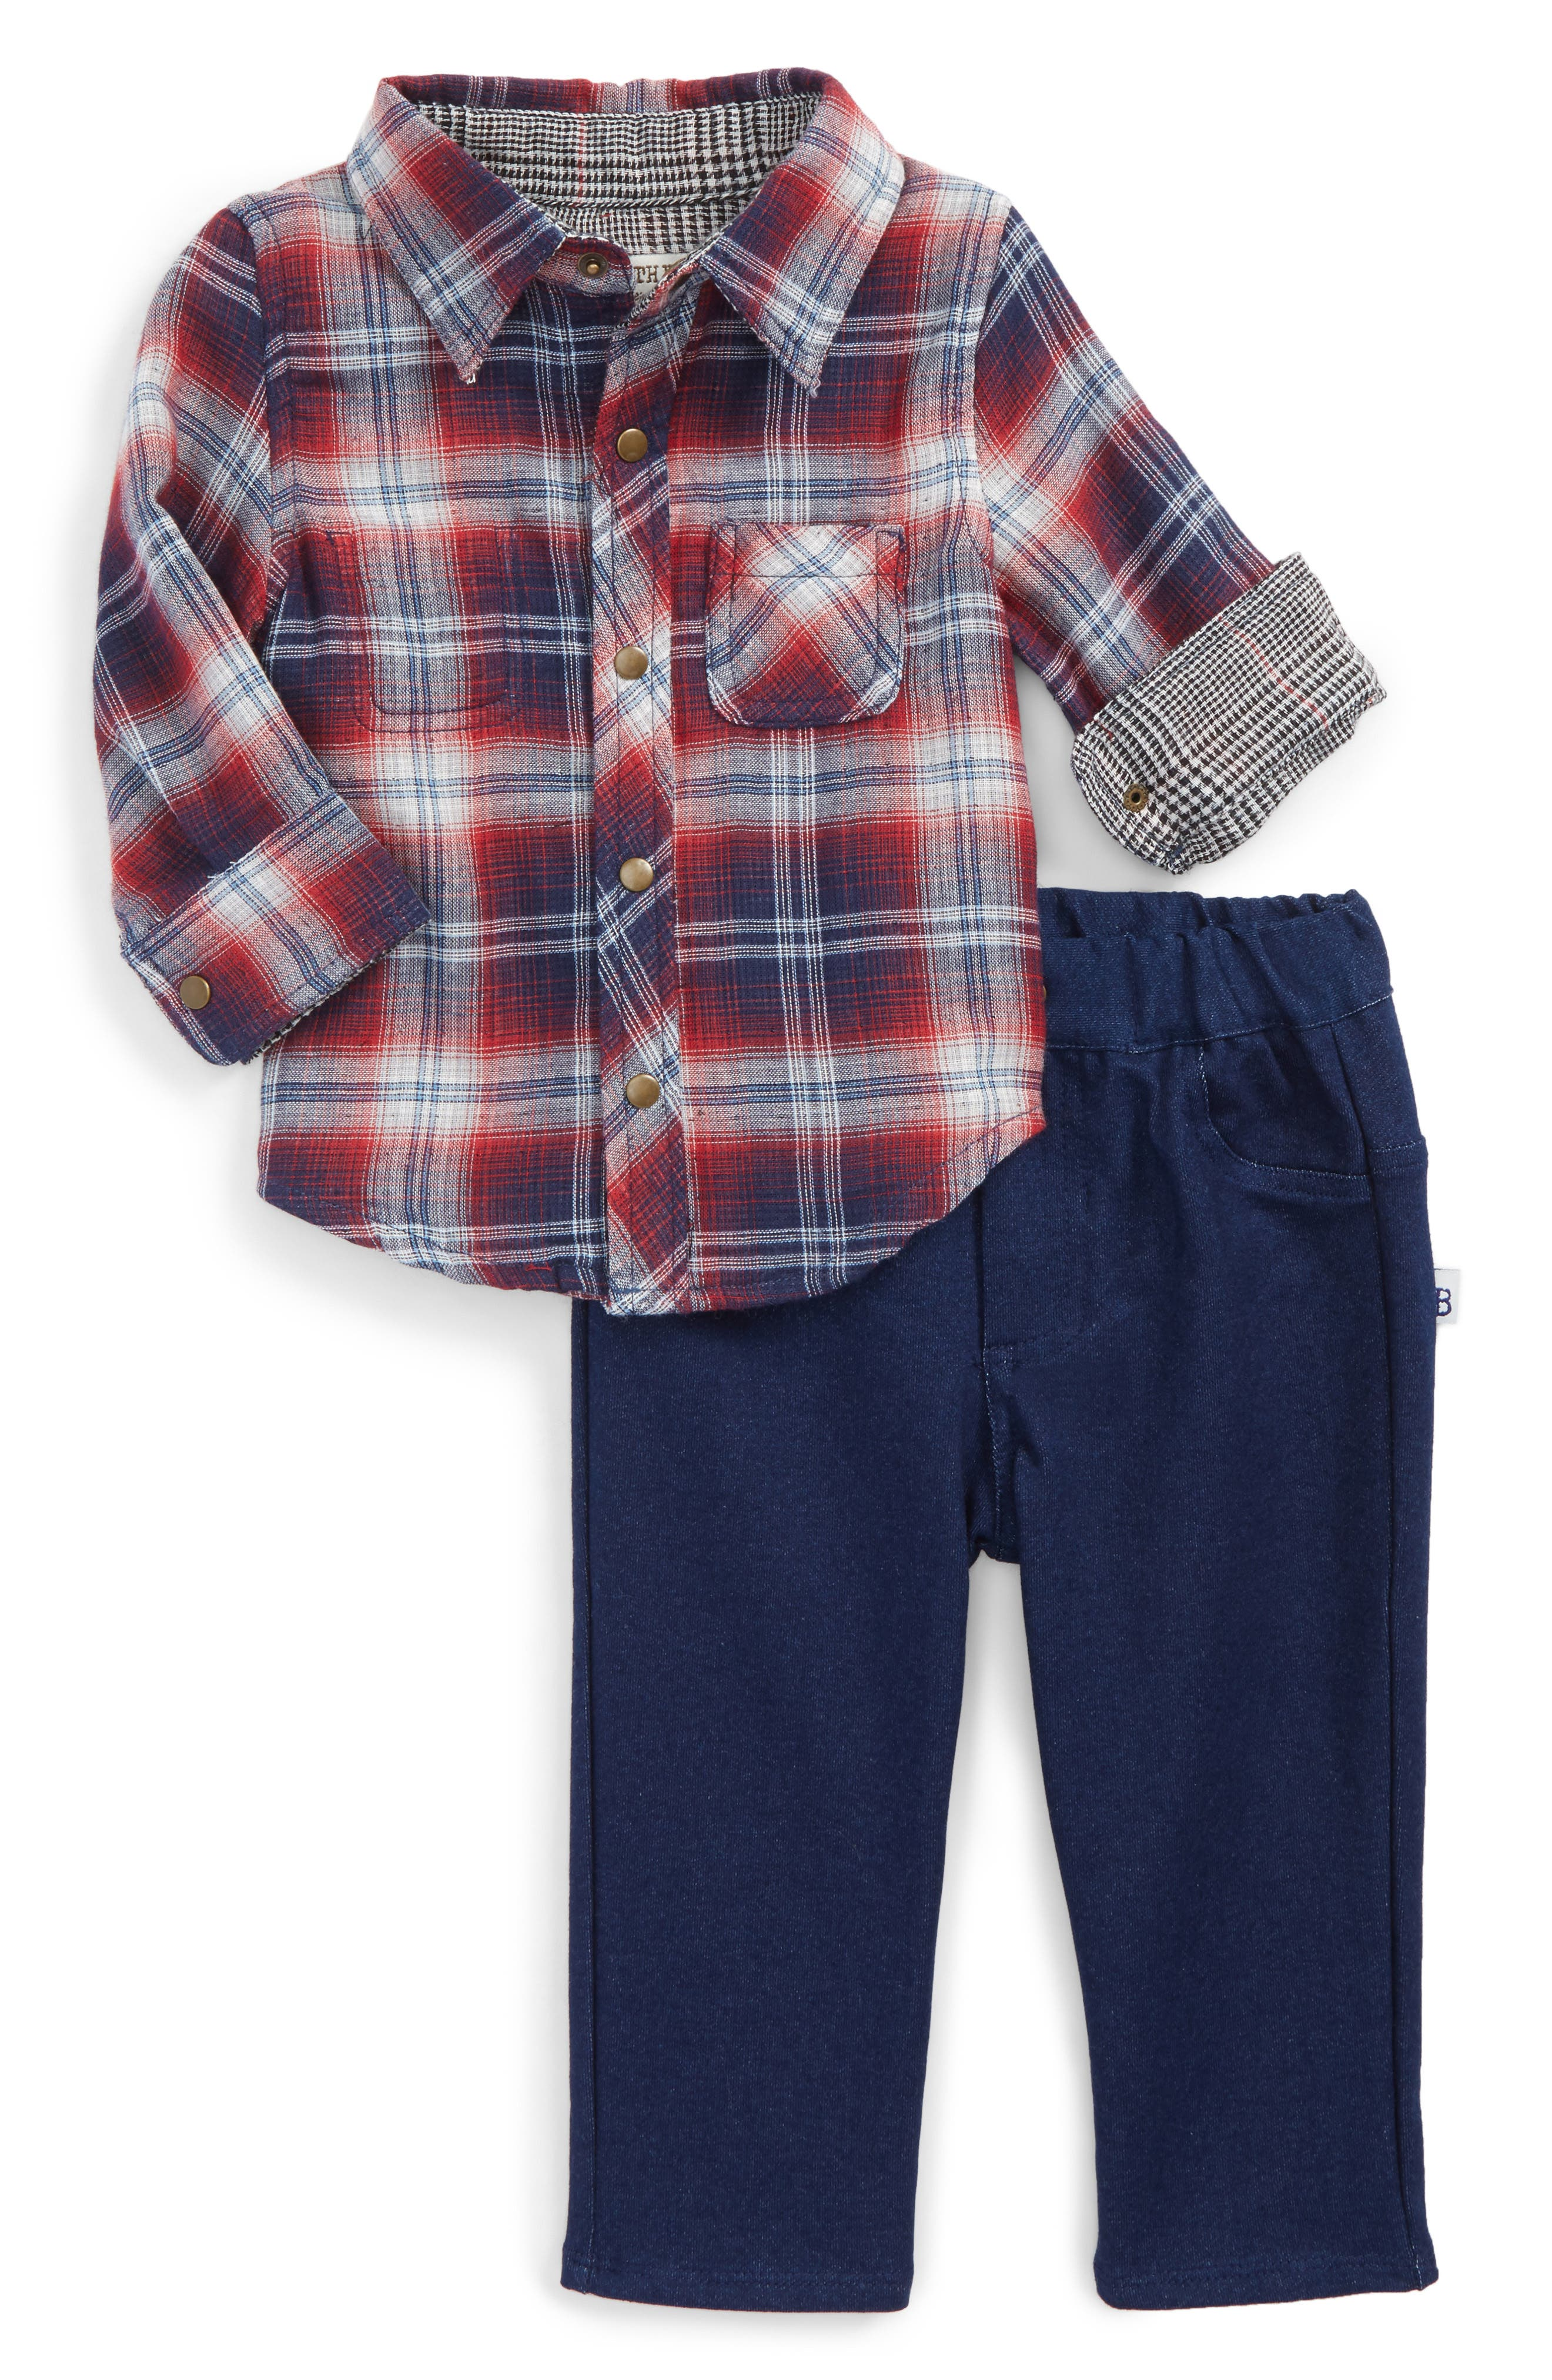 Main Image - Little Brother by Pippa & Julie Reversible Woven Shirt & Pants Set (Baby Boys)